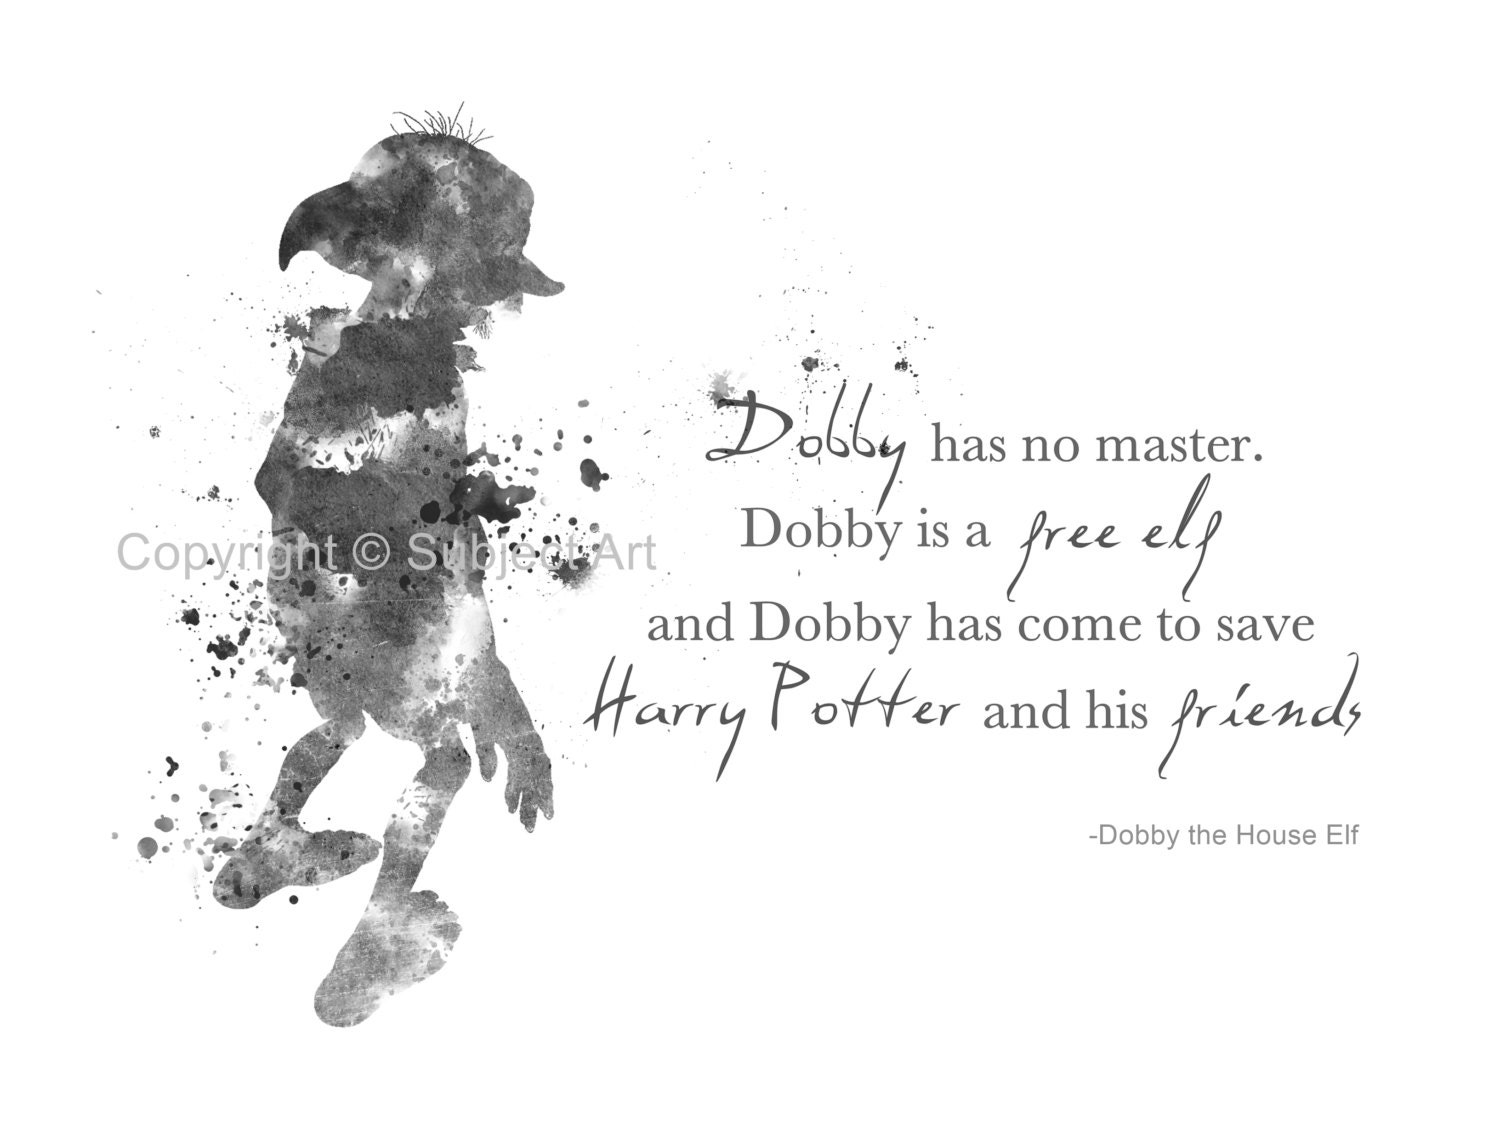 Art Print Dobby The House Elf Quote on free create a watermark